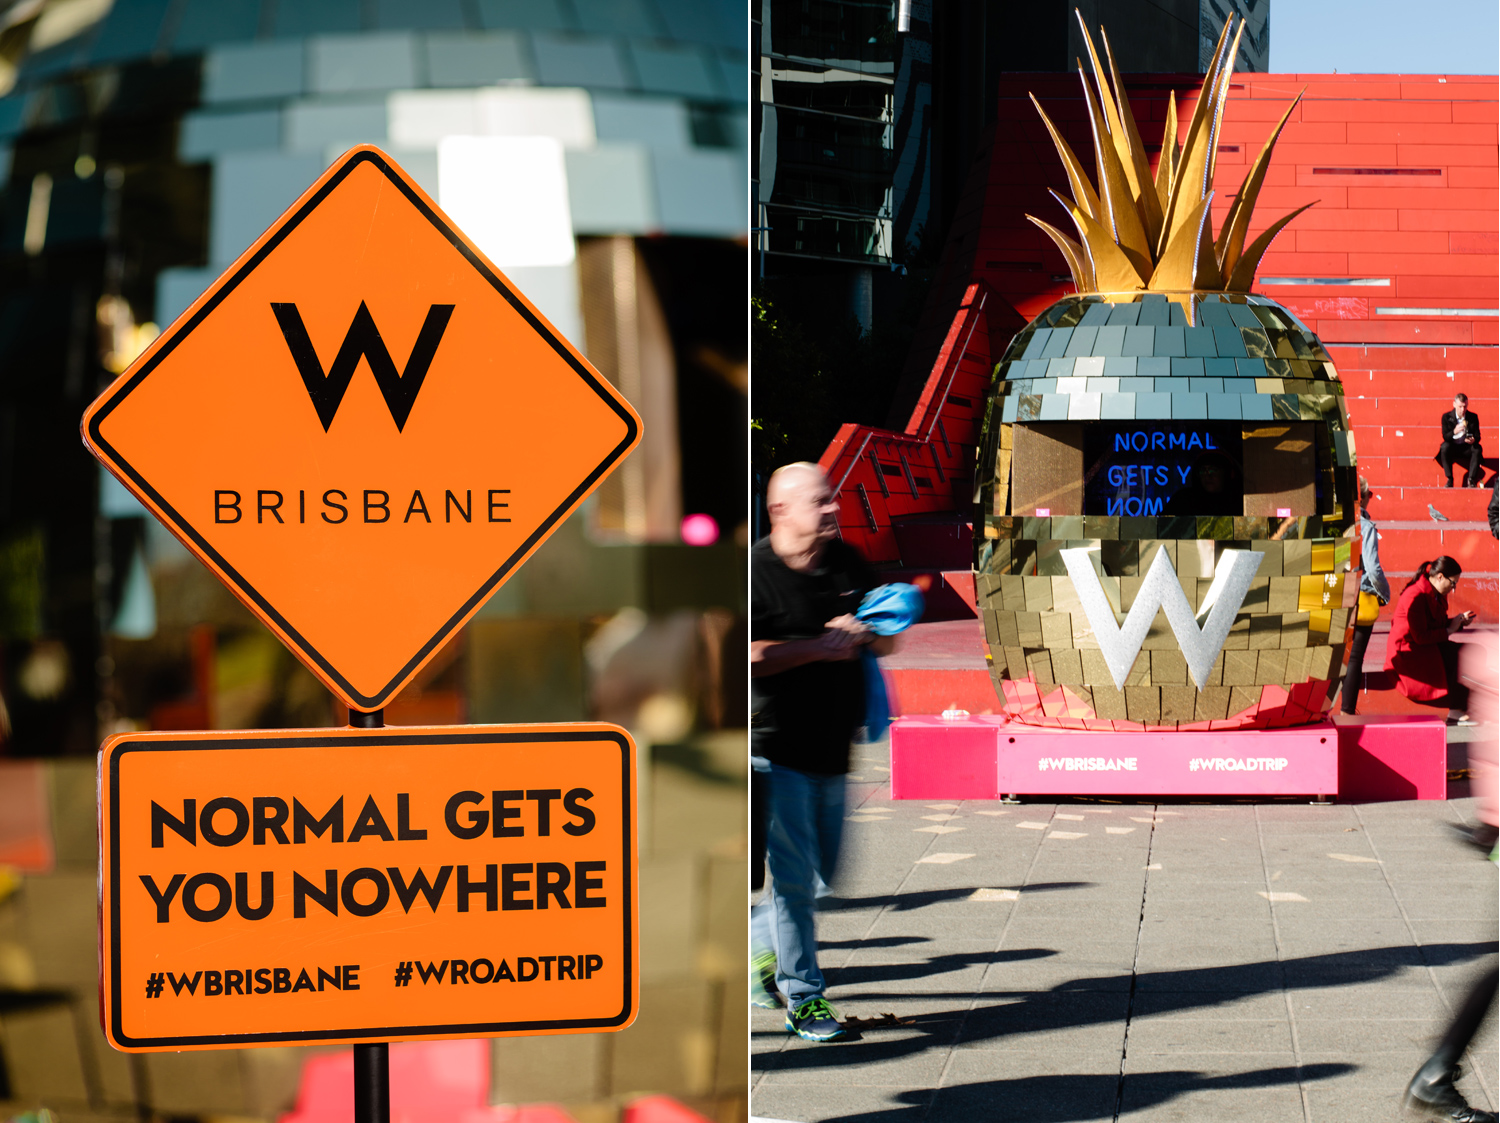 002-w-brisbane-activation.jpg